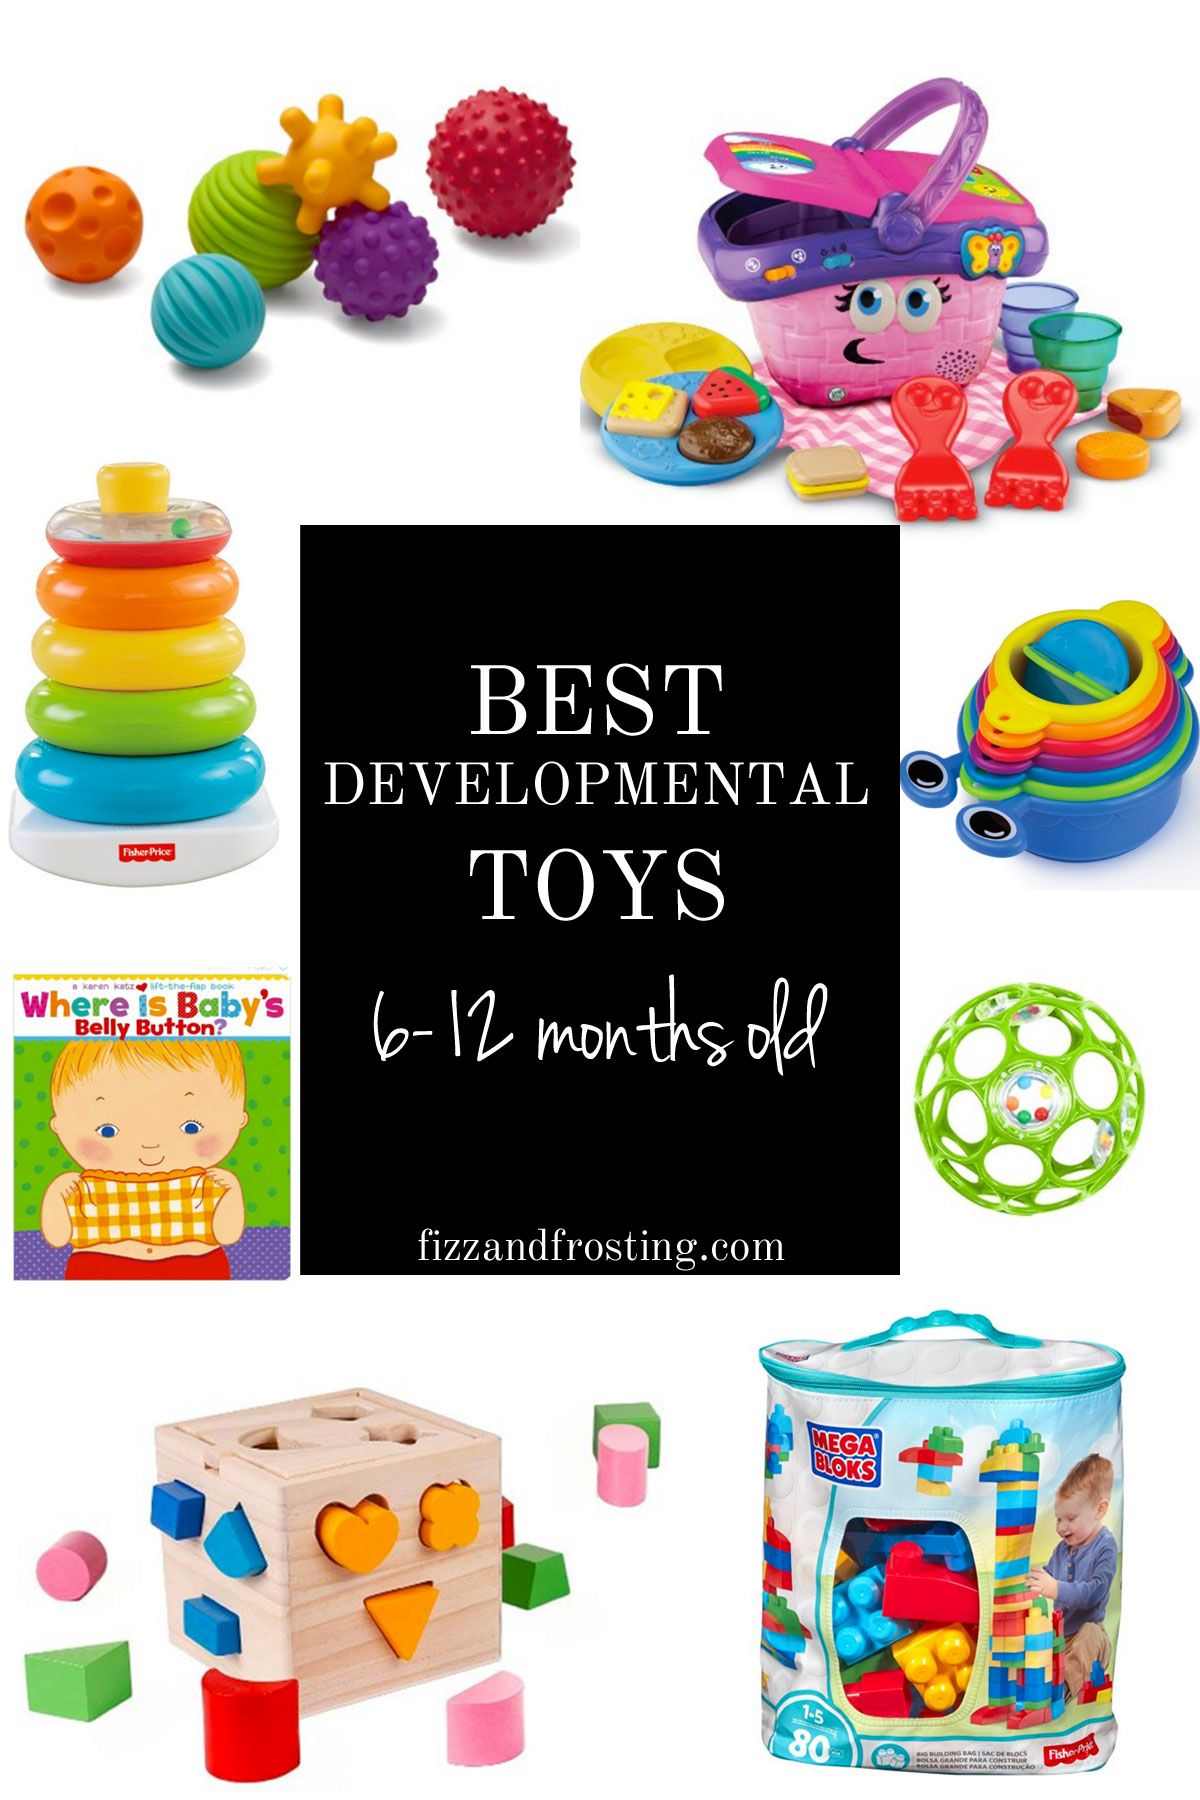 Best Educational Toy Site : Best toy for month old toys model ideas